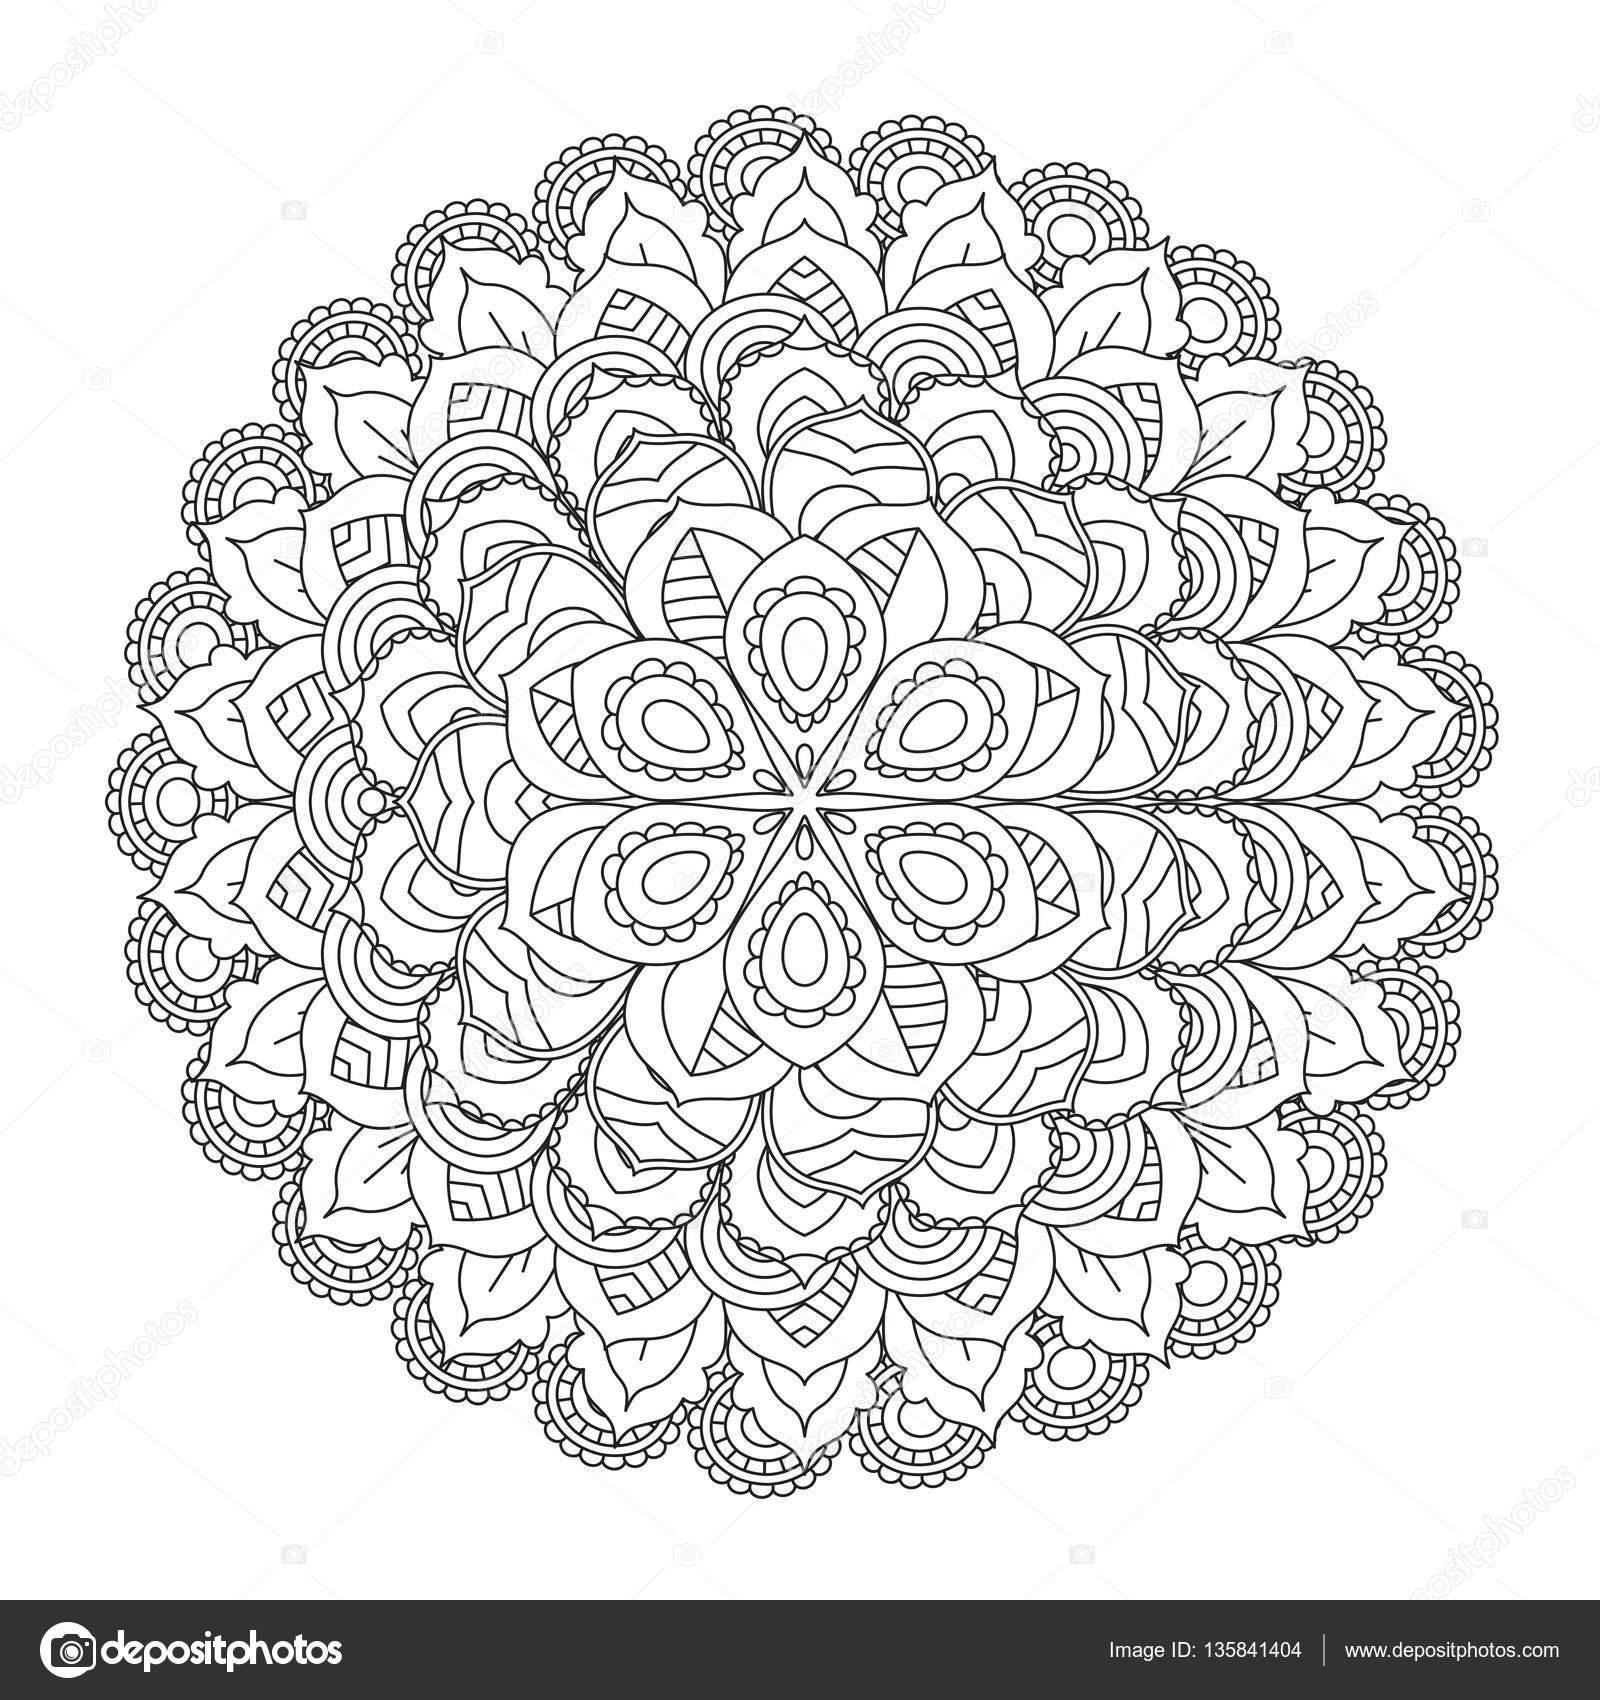 Depositphotos_135841404-Stock-İllustration-Outline-Mandala-For-Coloring-Book